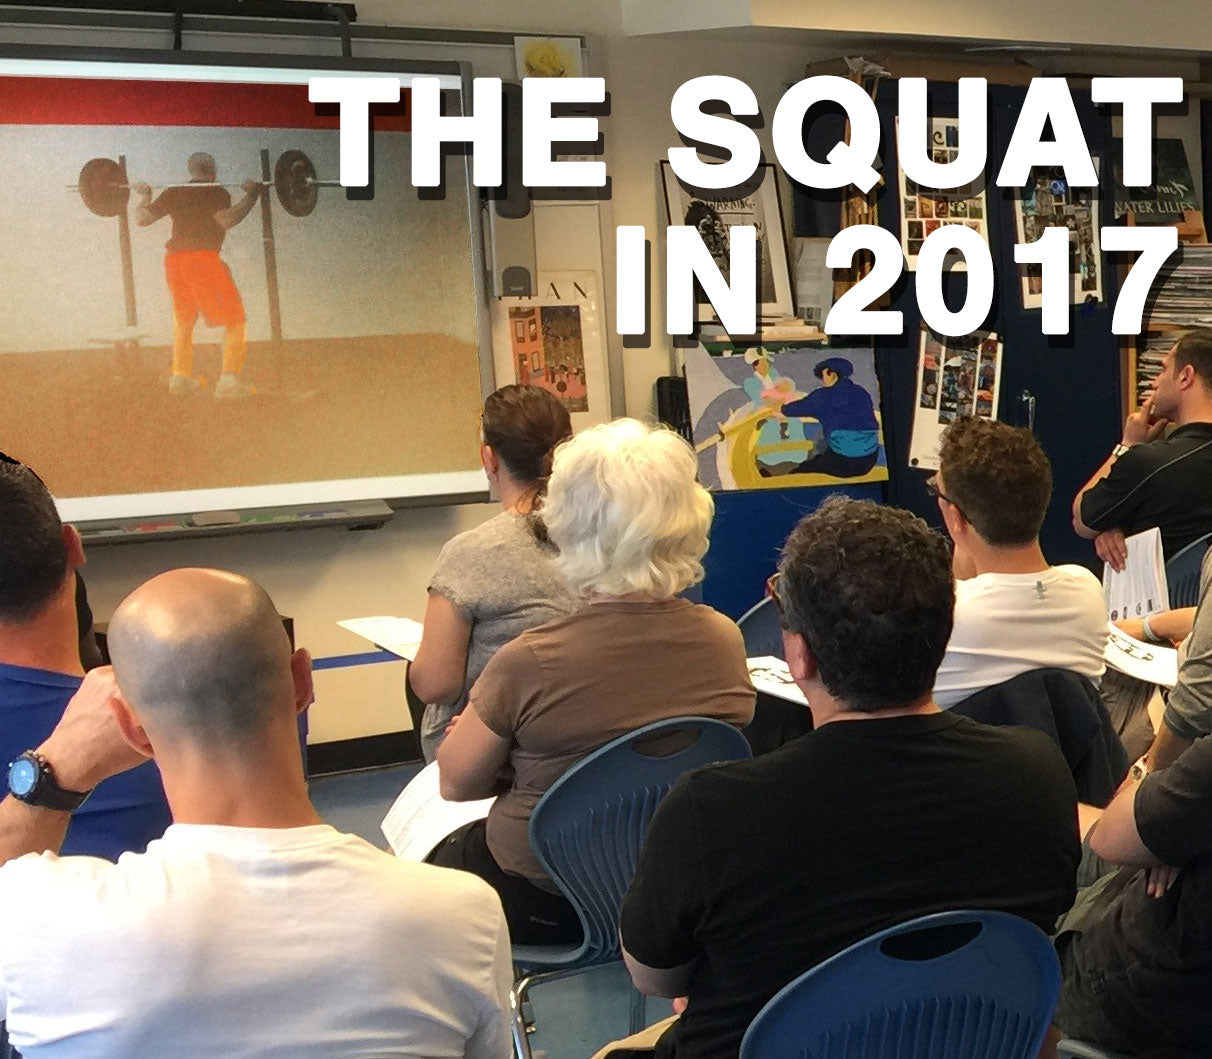 The Squat in 2017